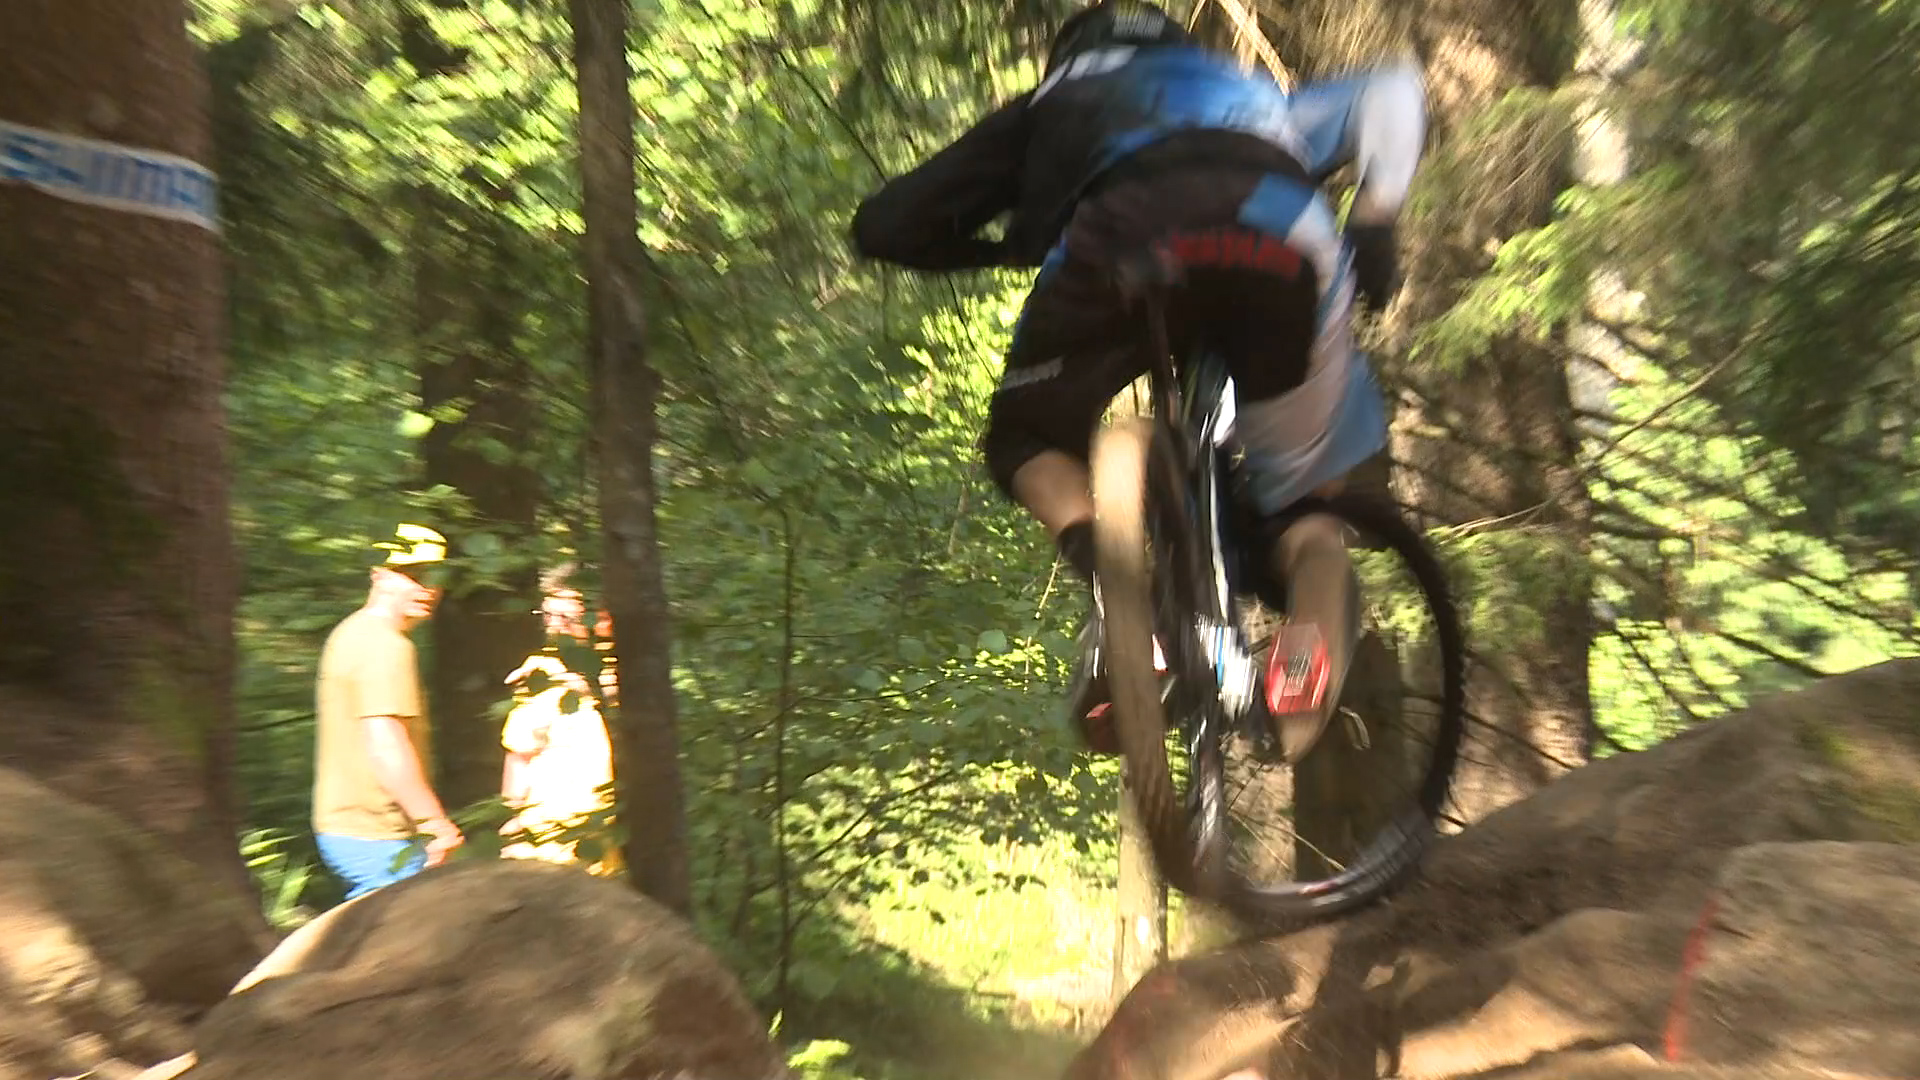 crash video andrew neethling s superman to oblivion at